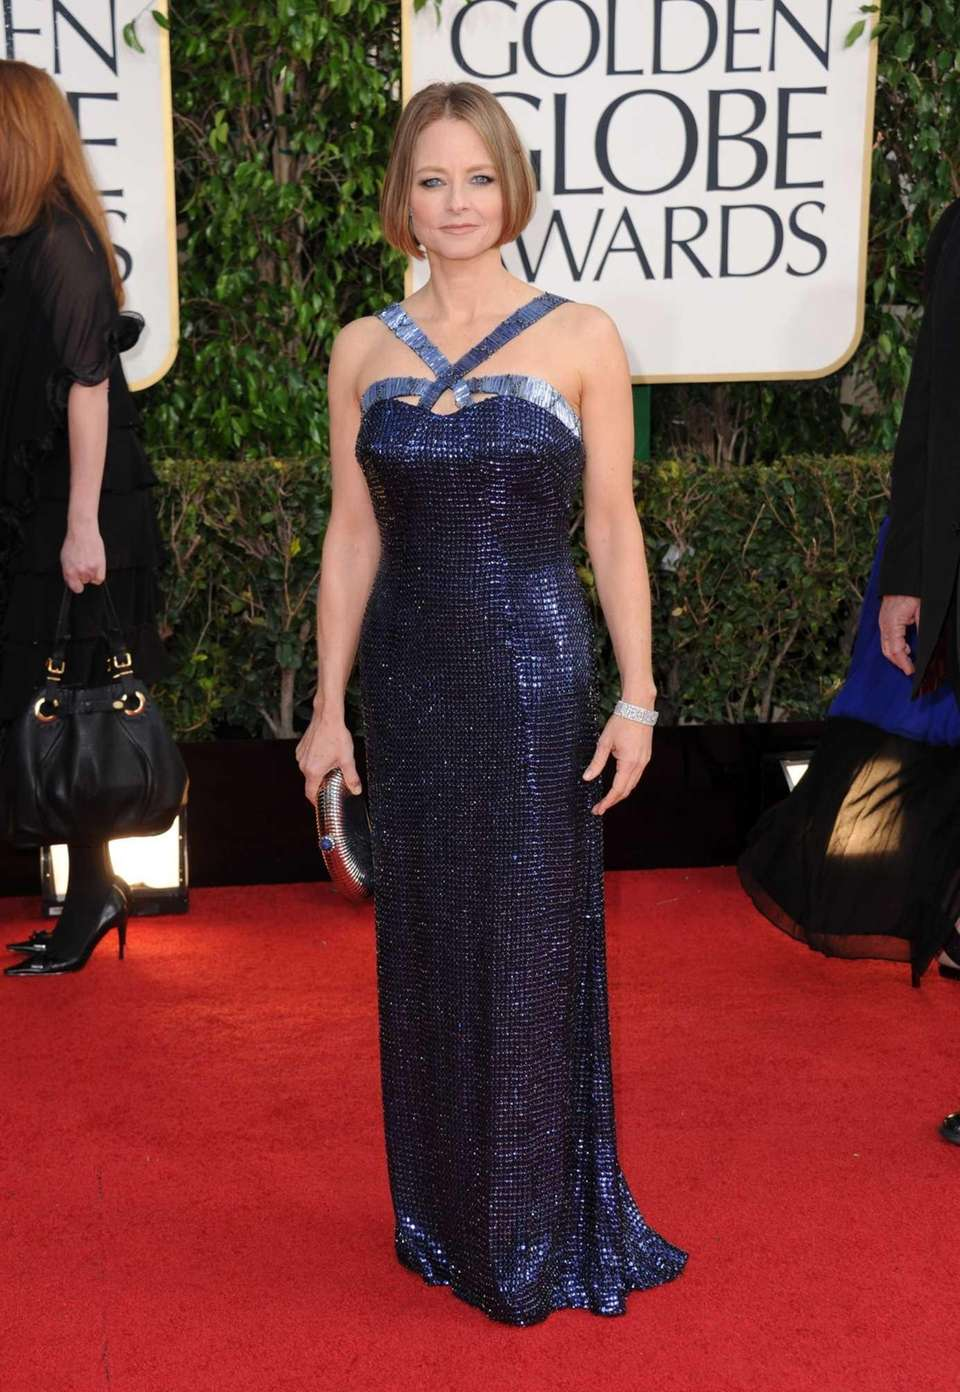 Actress and filmmaker Jodie Foster arrives at the